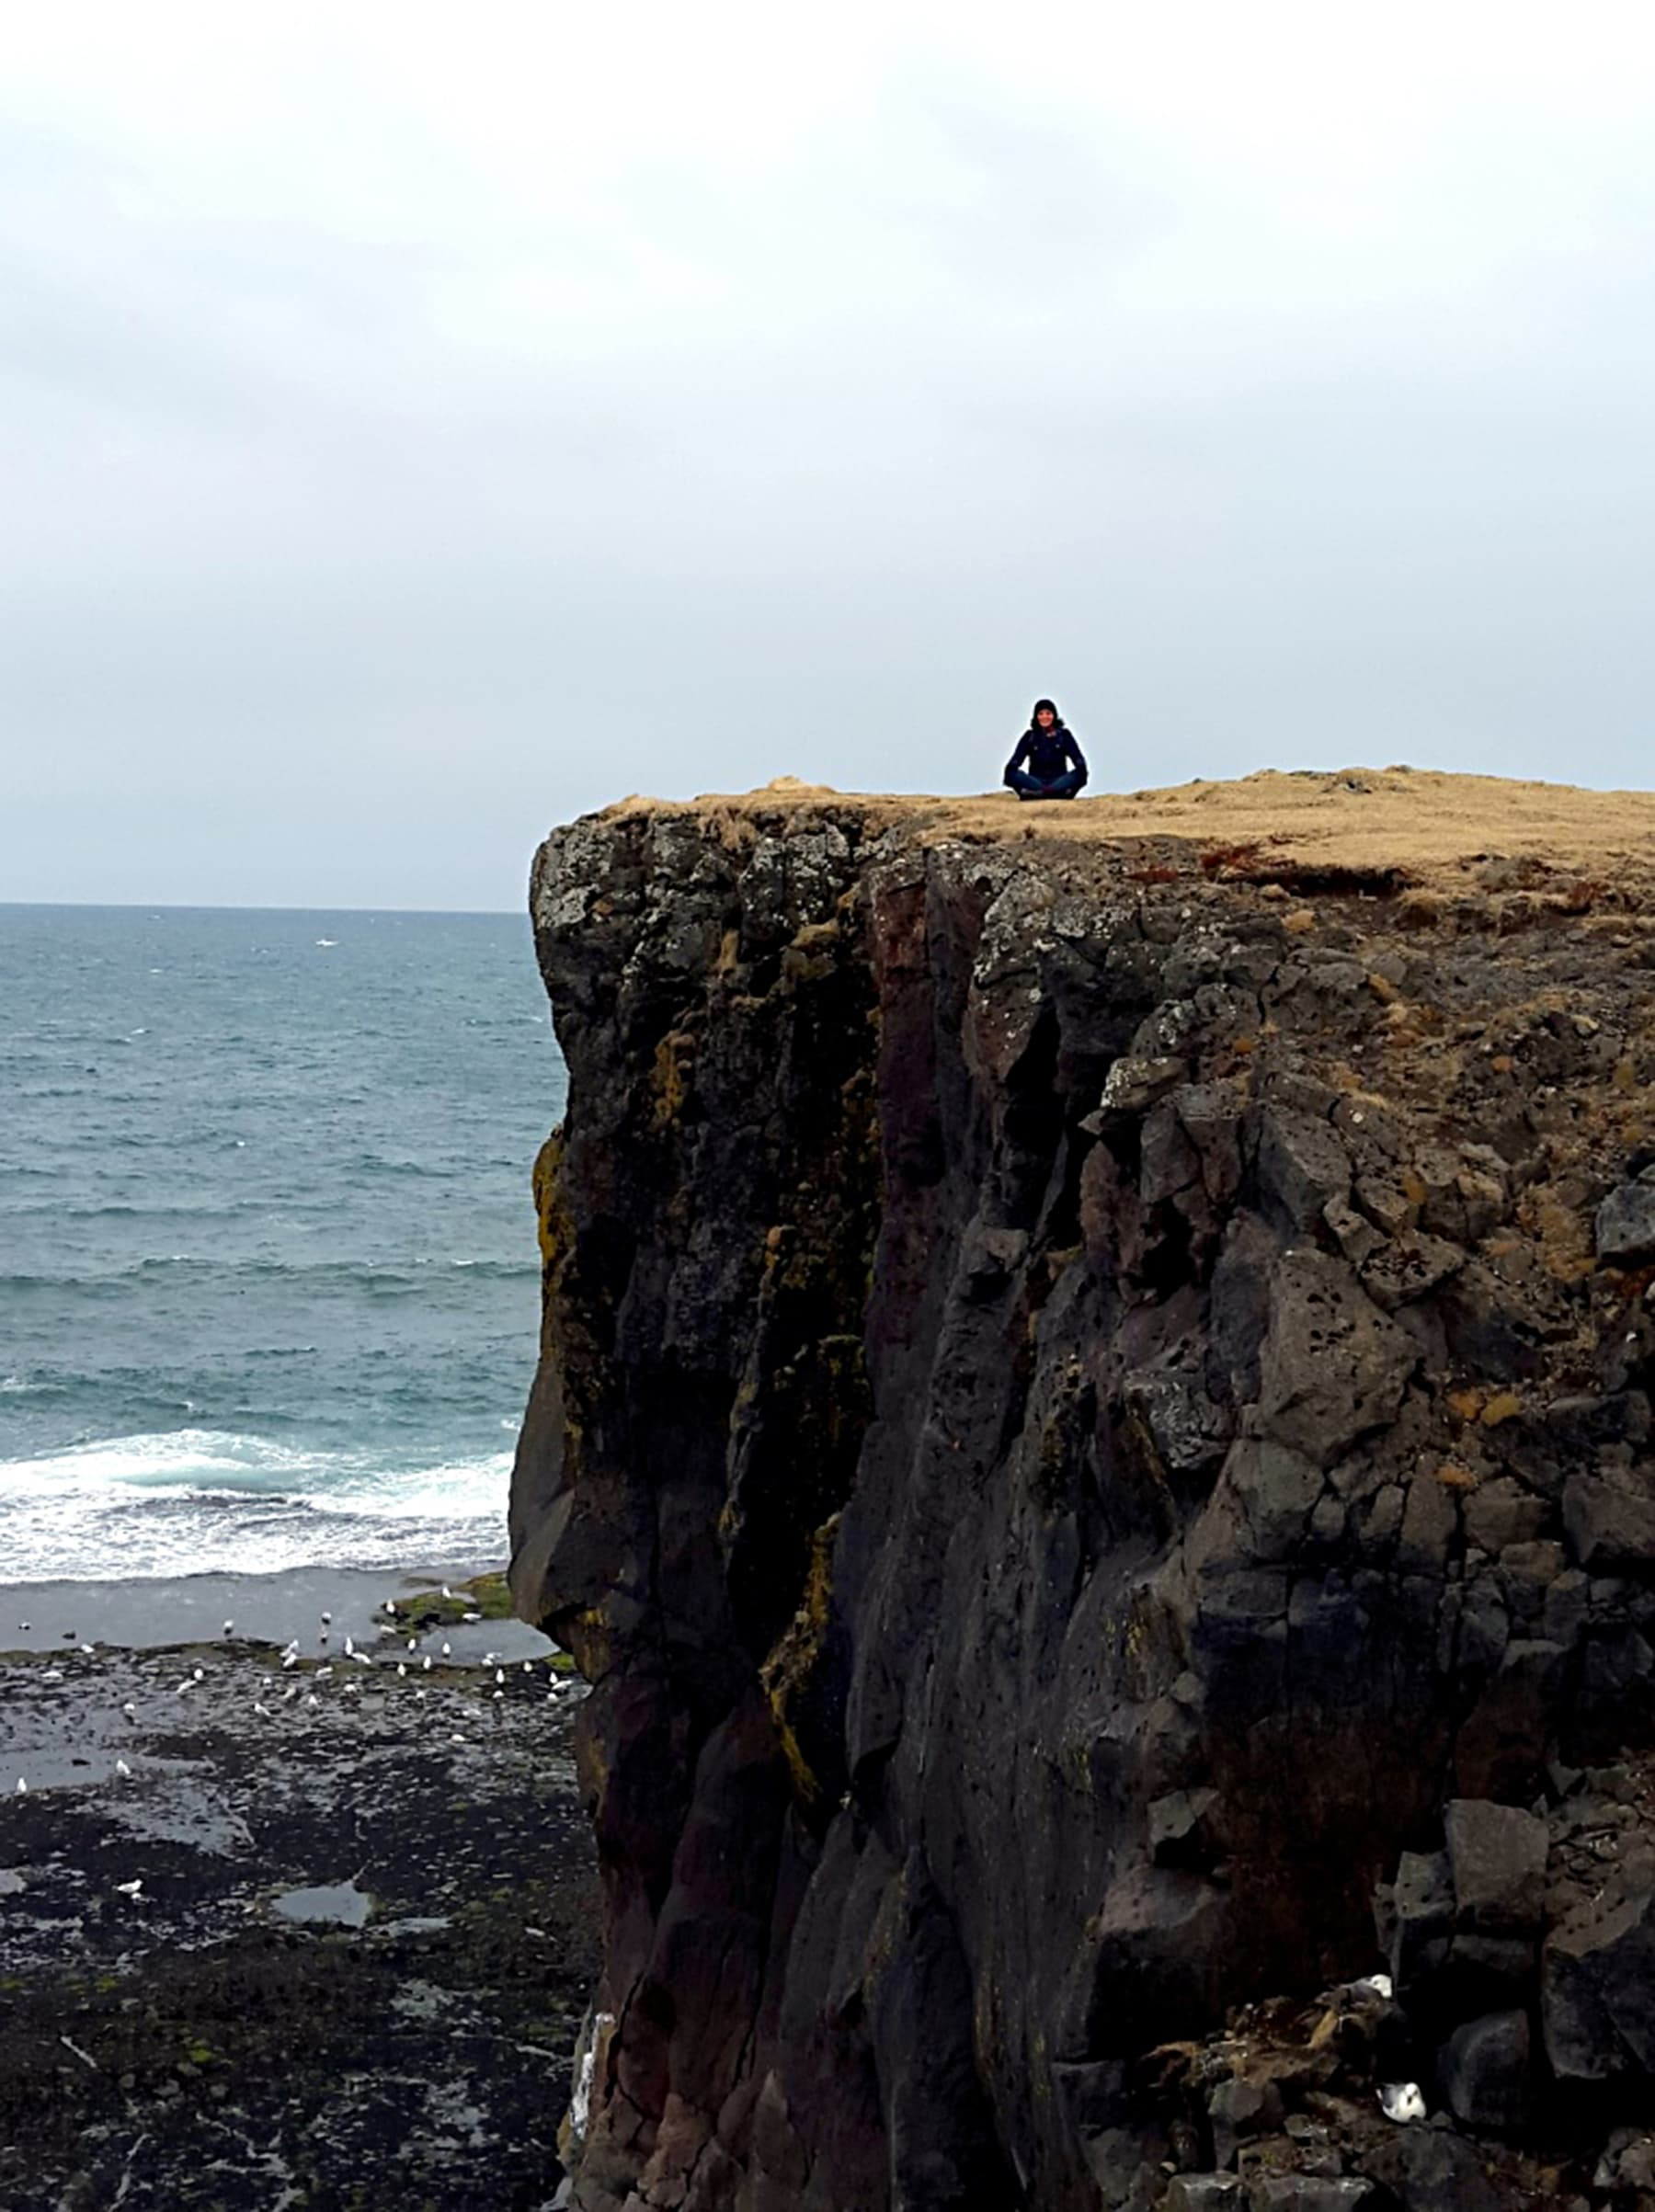 Taking a break on a cliff on the south-western coast.